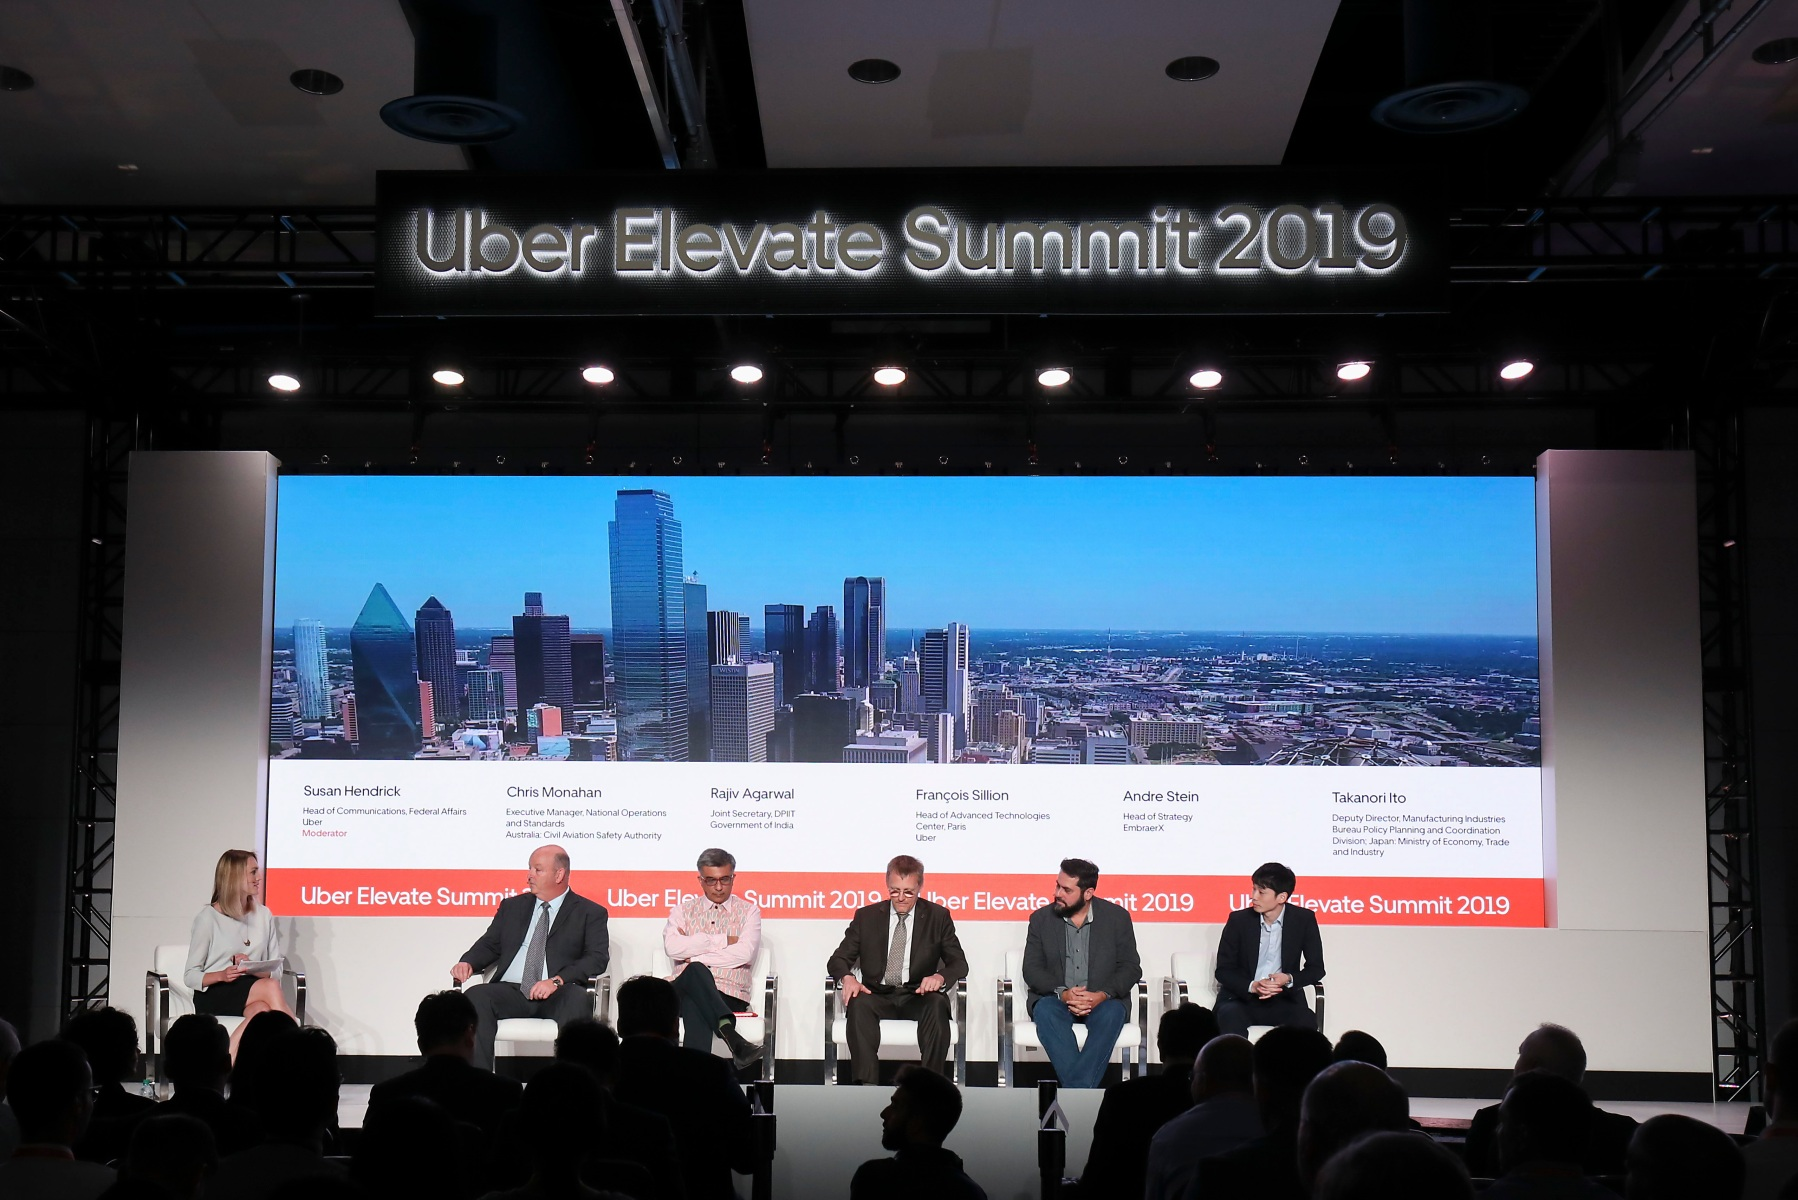 Uber is unveiling new designs at the Uber Elevate Summit in D.C.